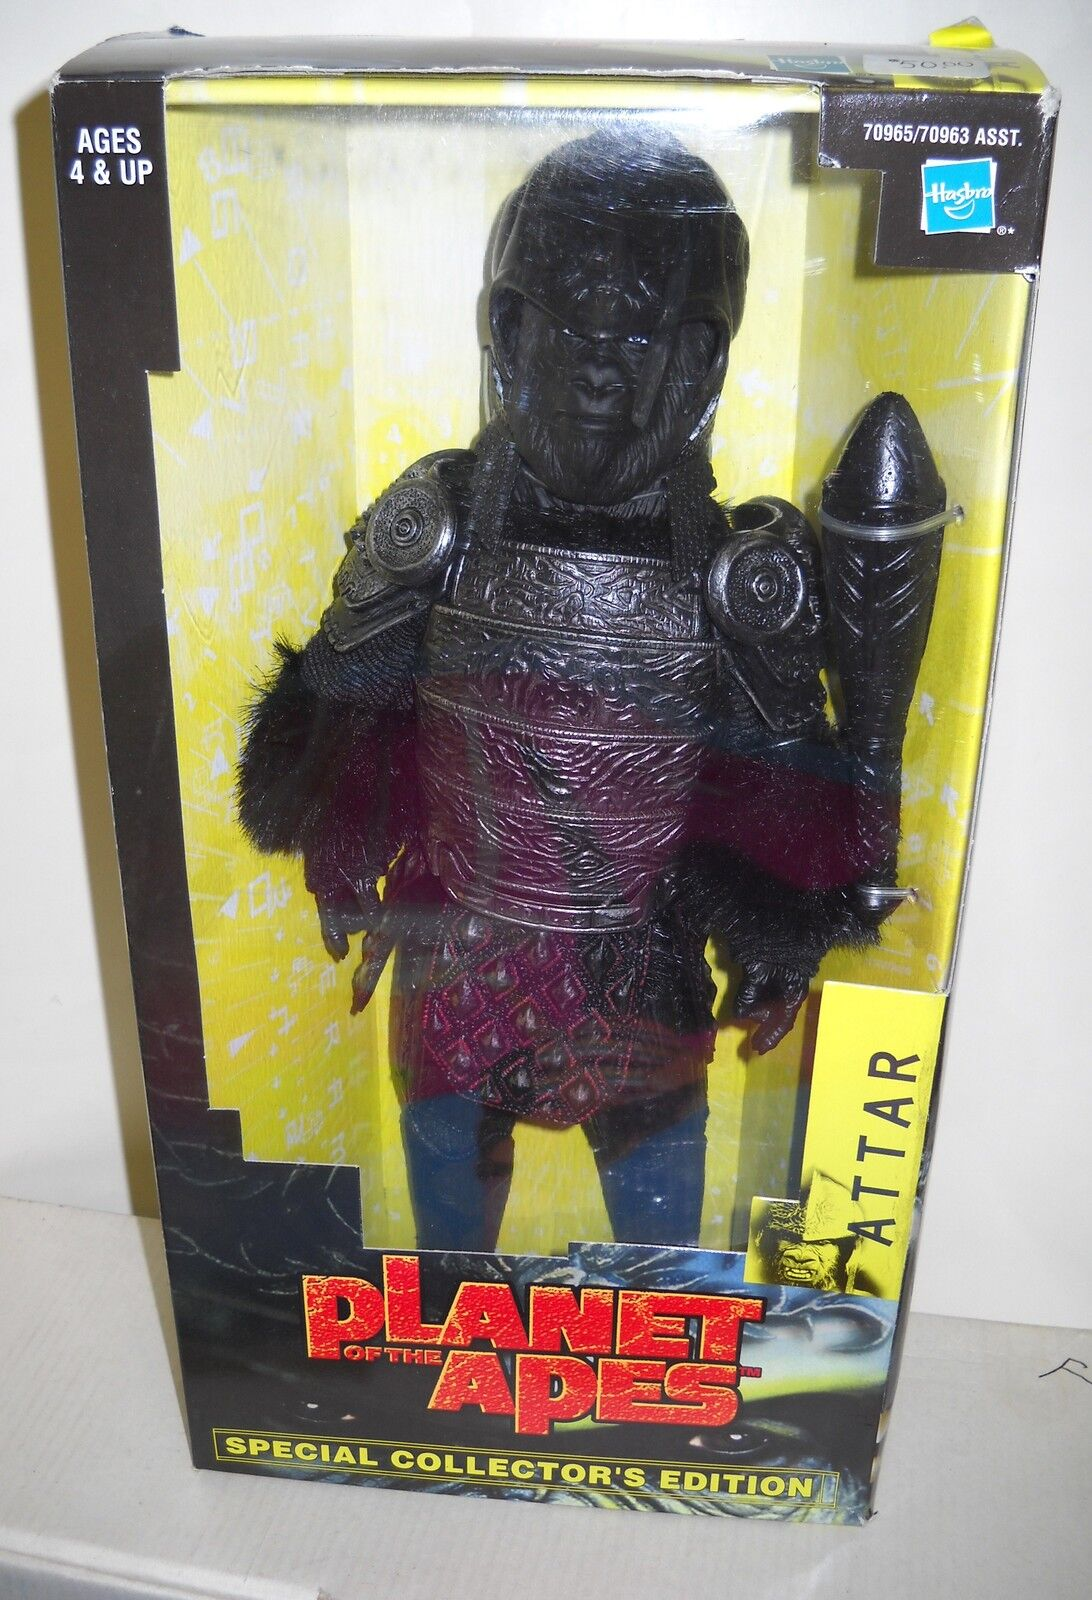 4489 NRFB Hasbro Planet of the Apes Movie Attar Special Collector's Edition